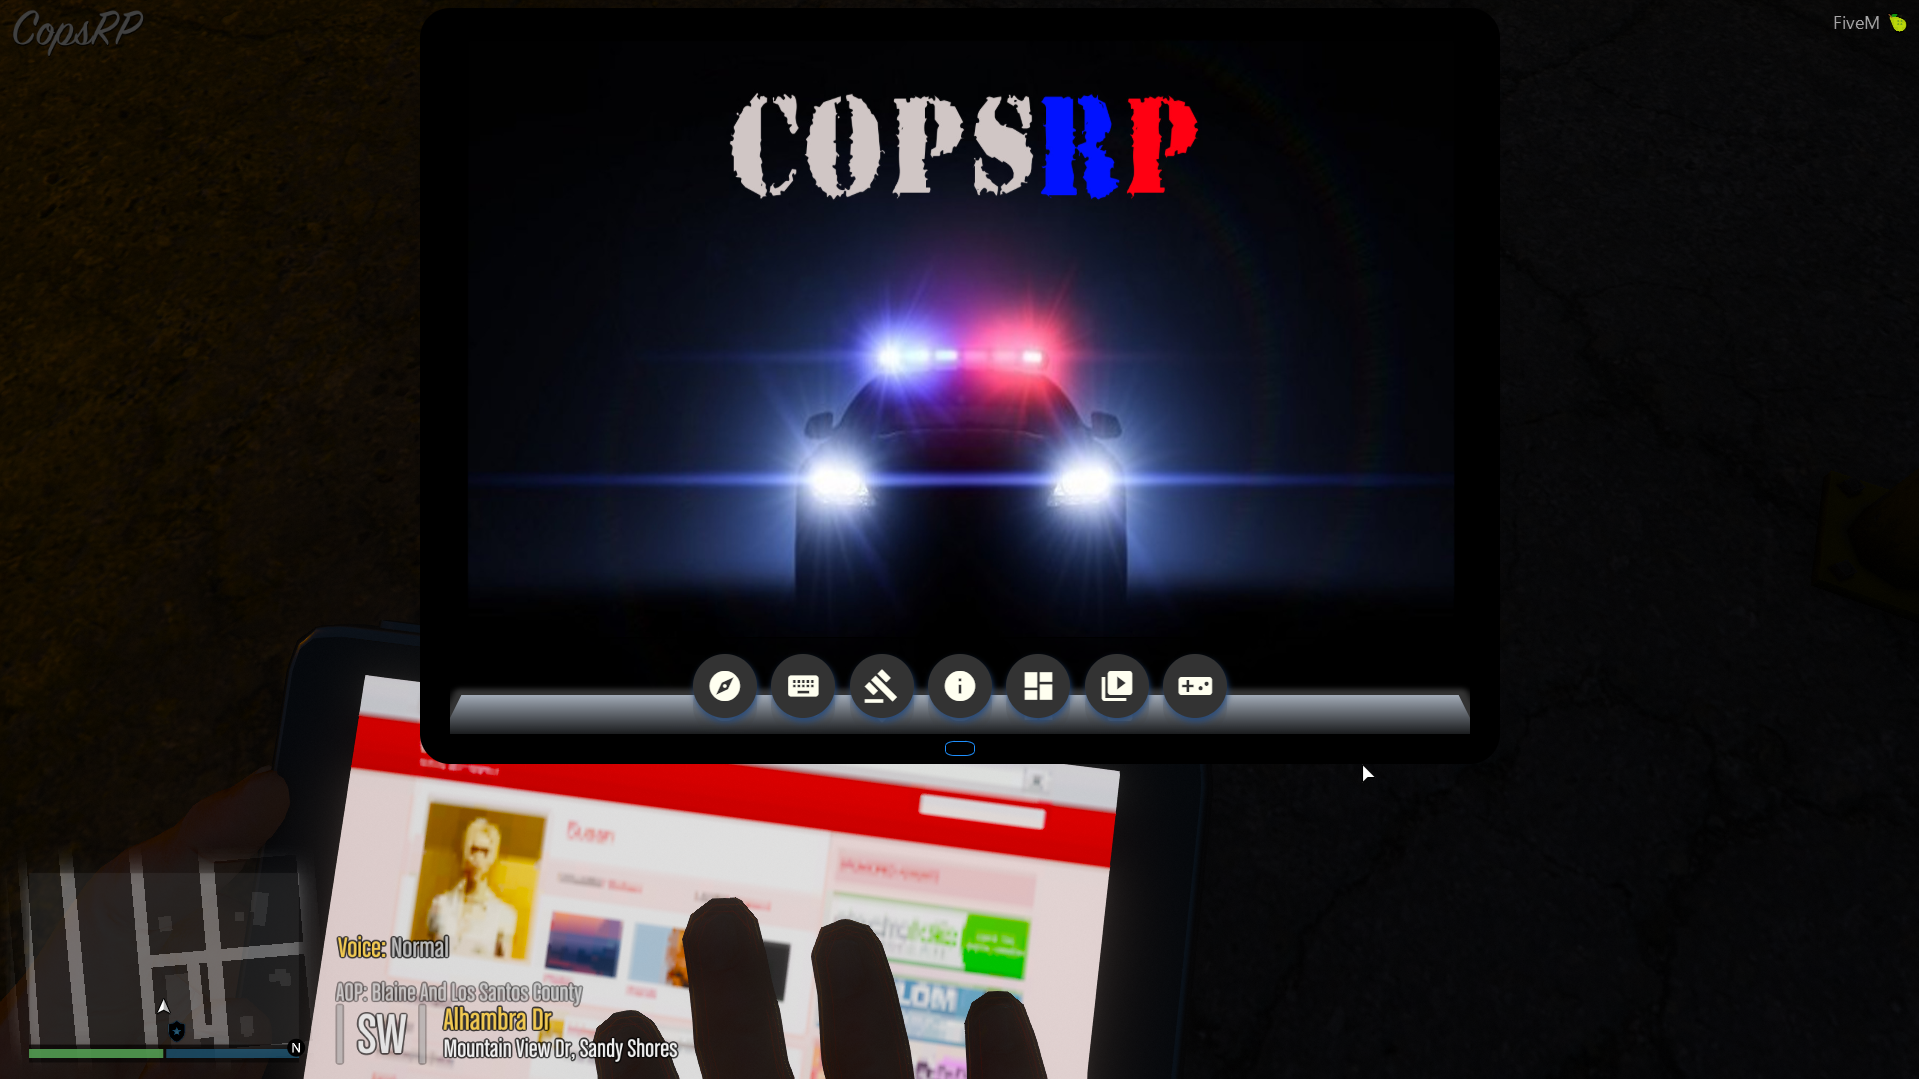 Copsrp Tablet